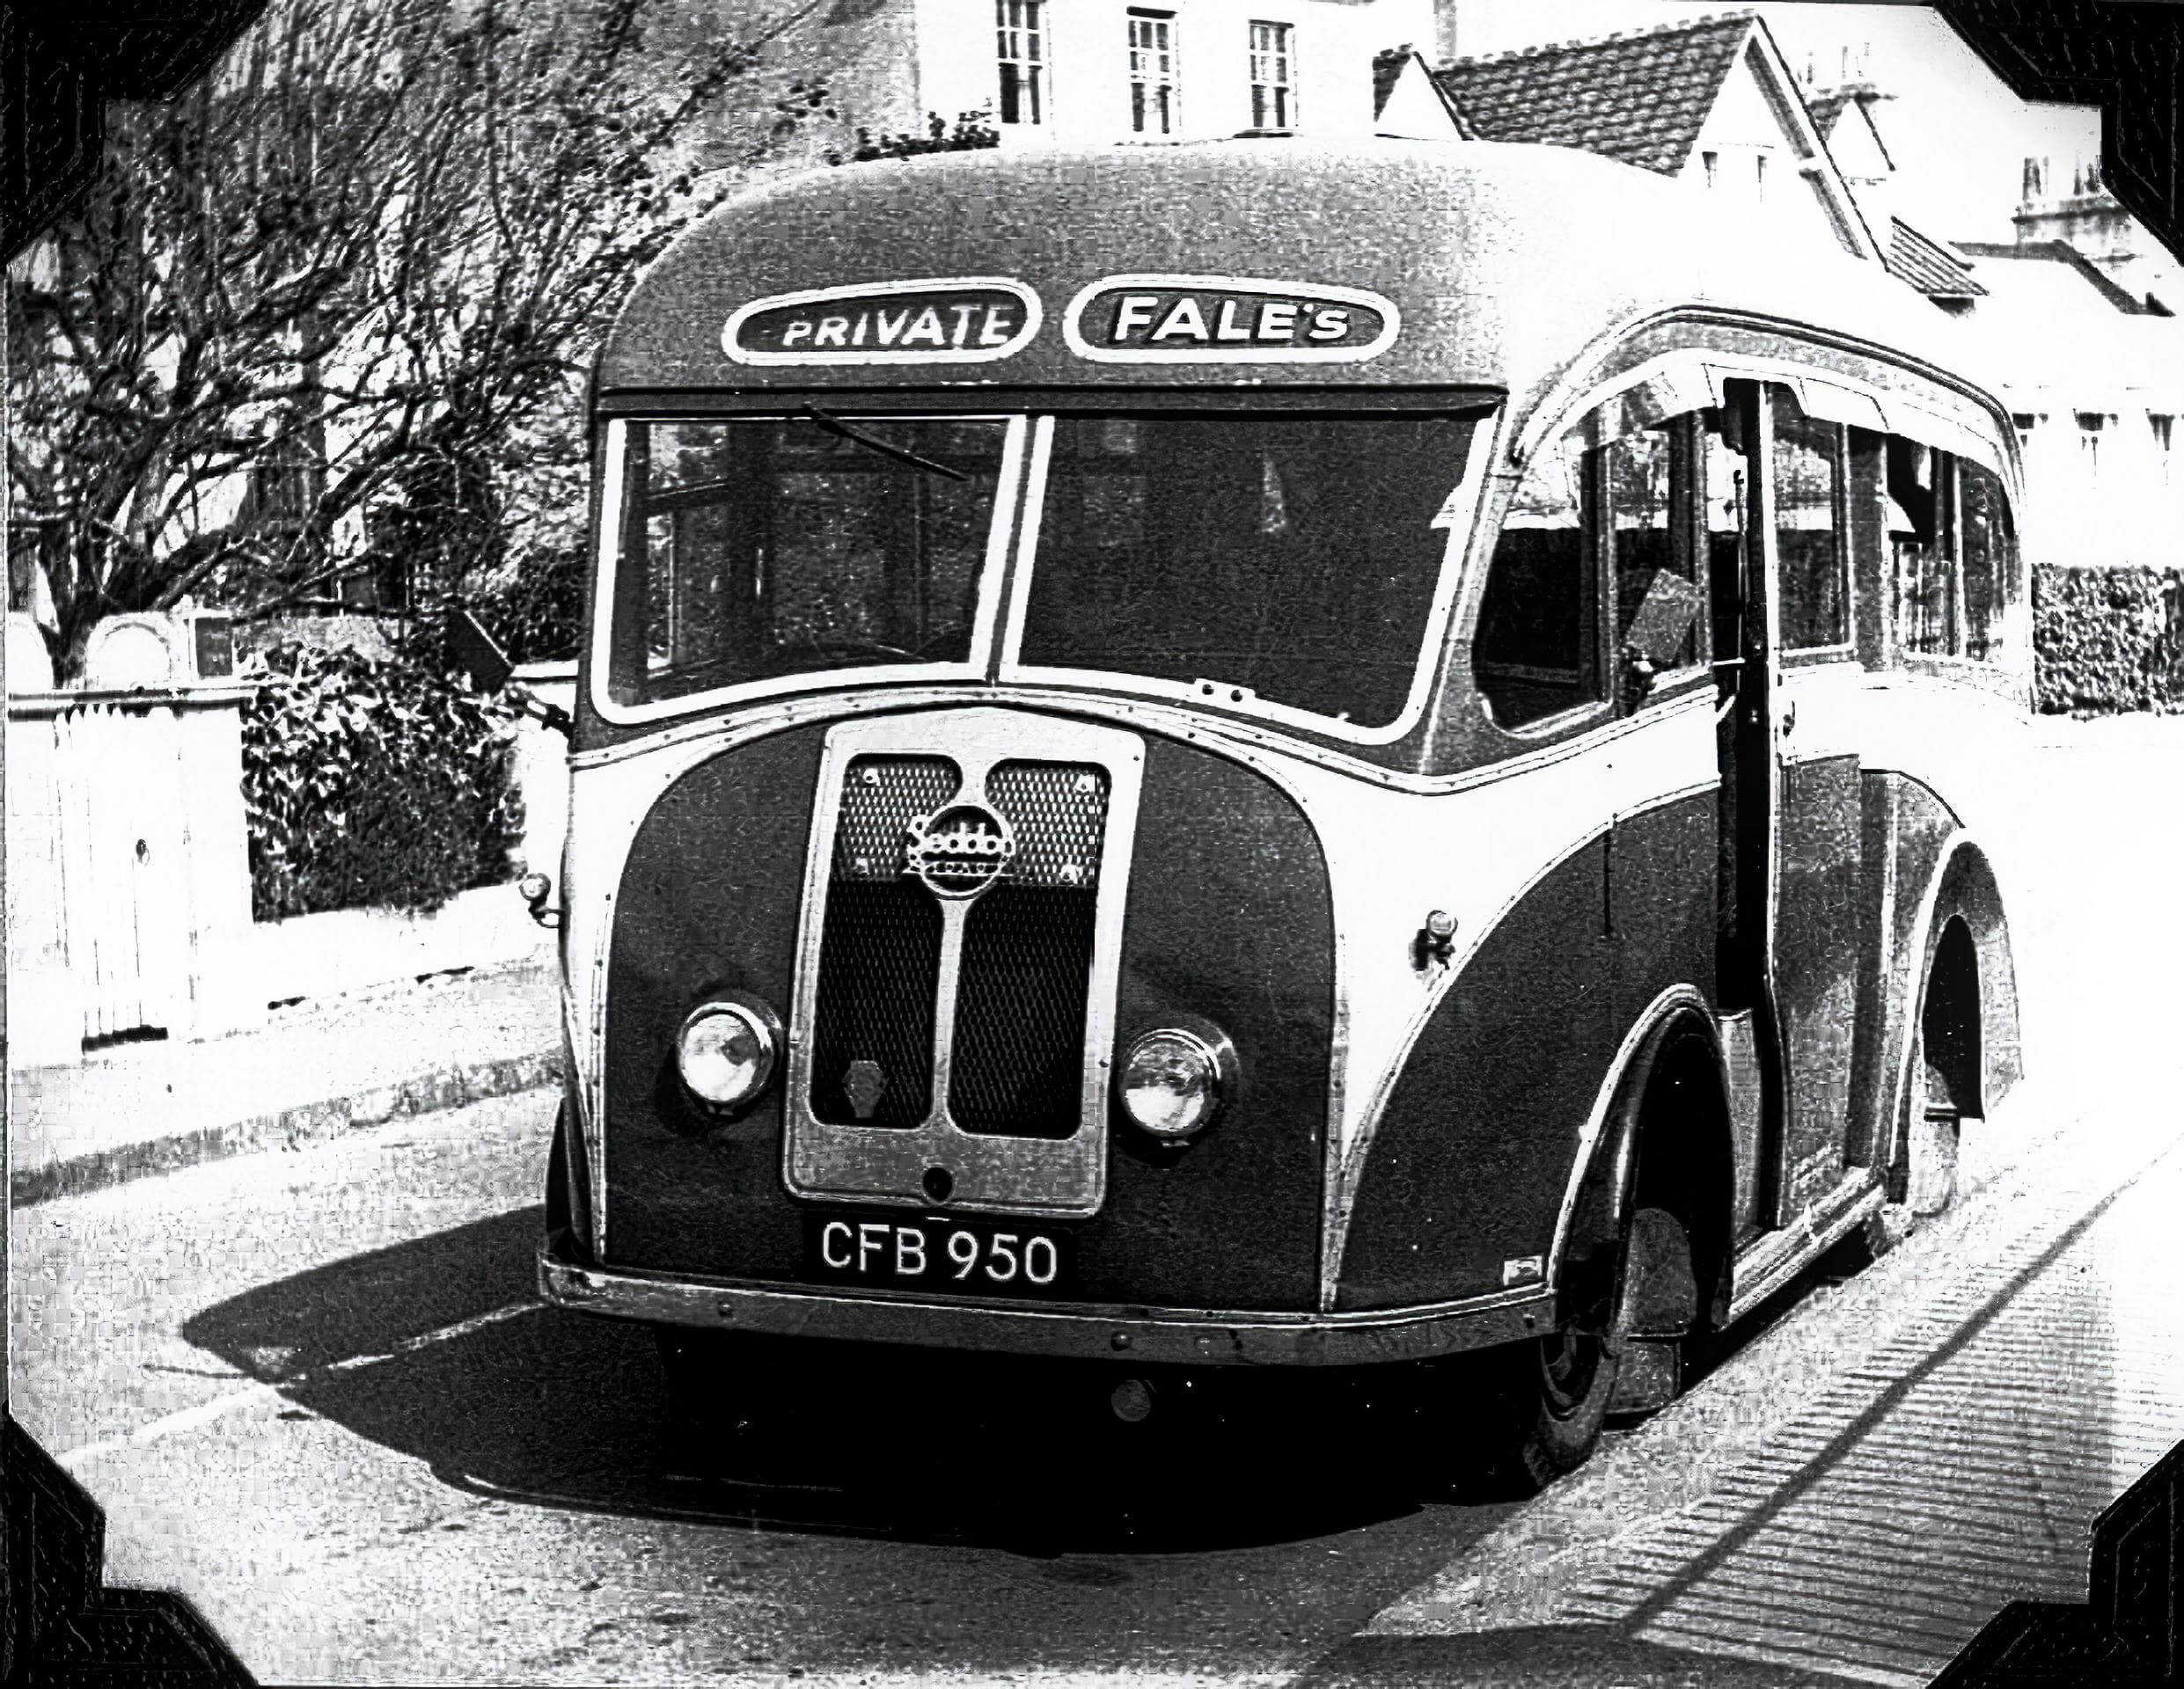 Fales bus on The Avenue, 1950s